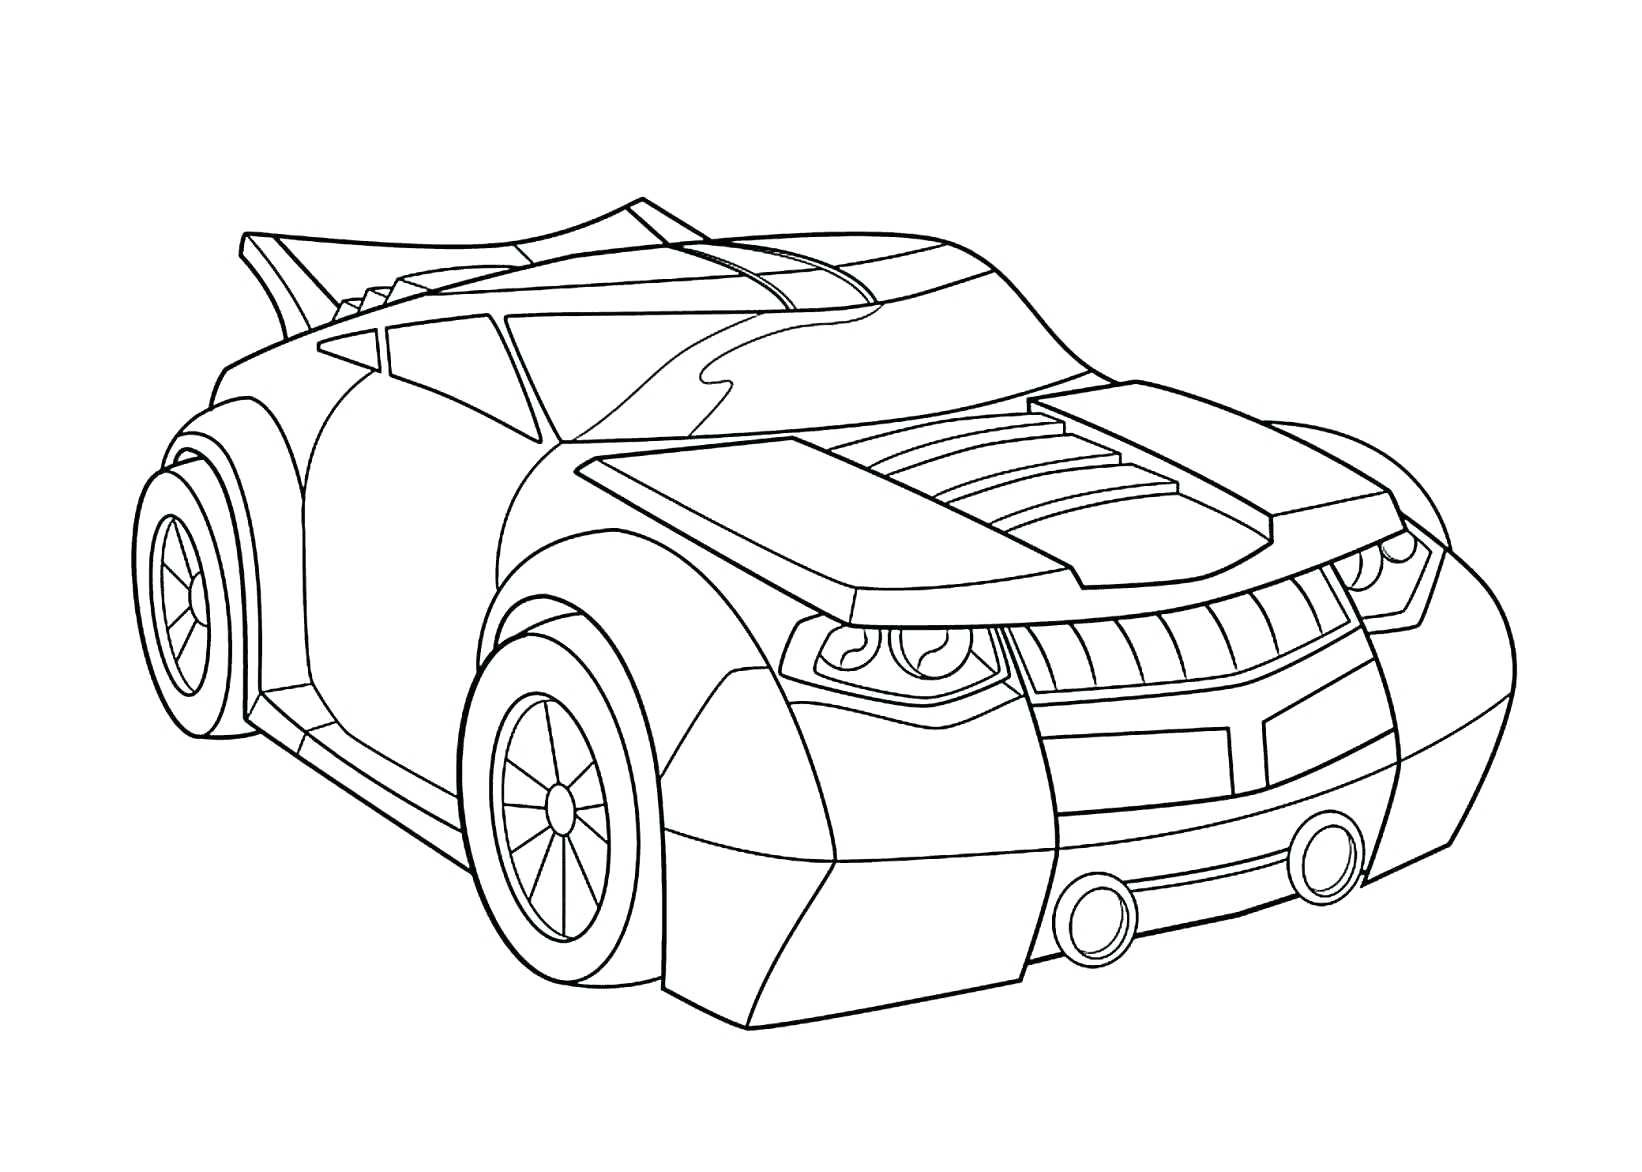 Auto Ausmalbilder Bugatti : Car Drawing Template At Getdrawings Com Free For Personal Use Car